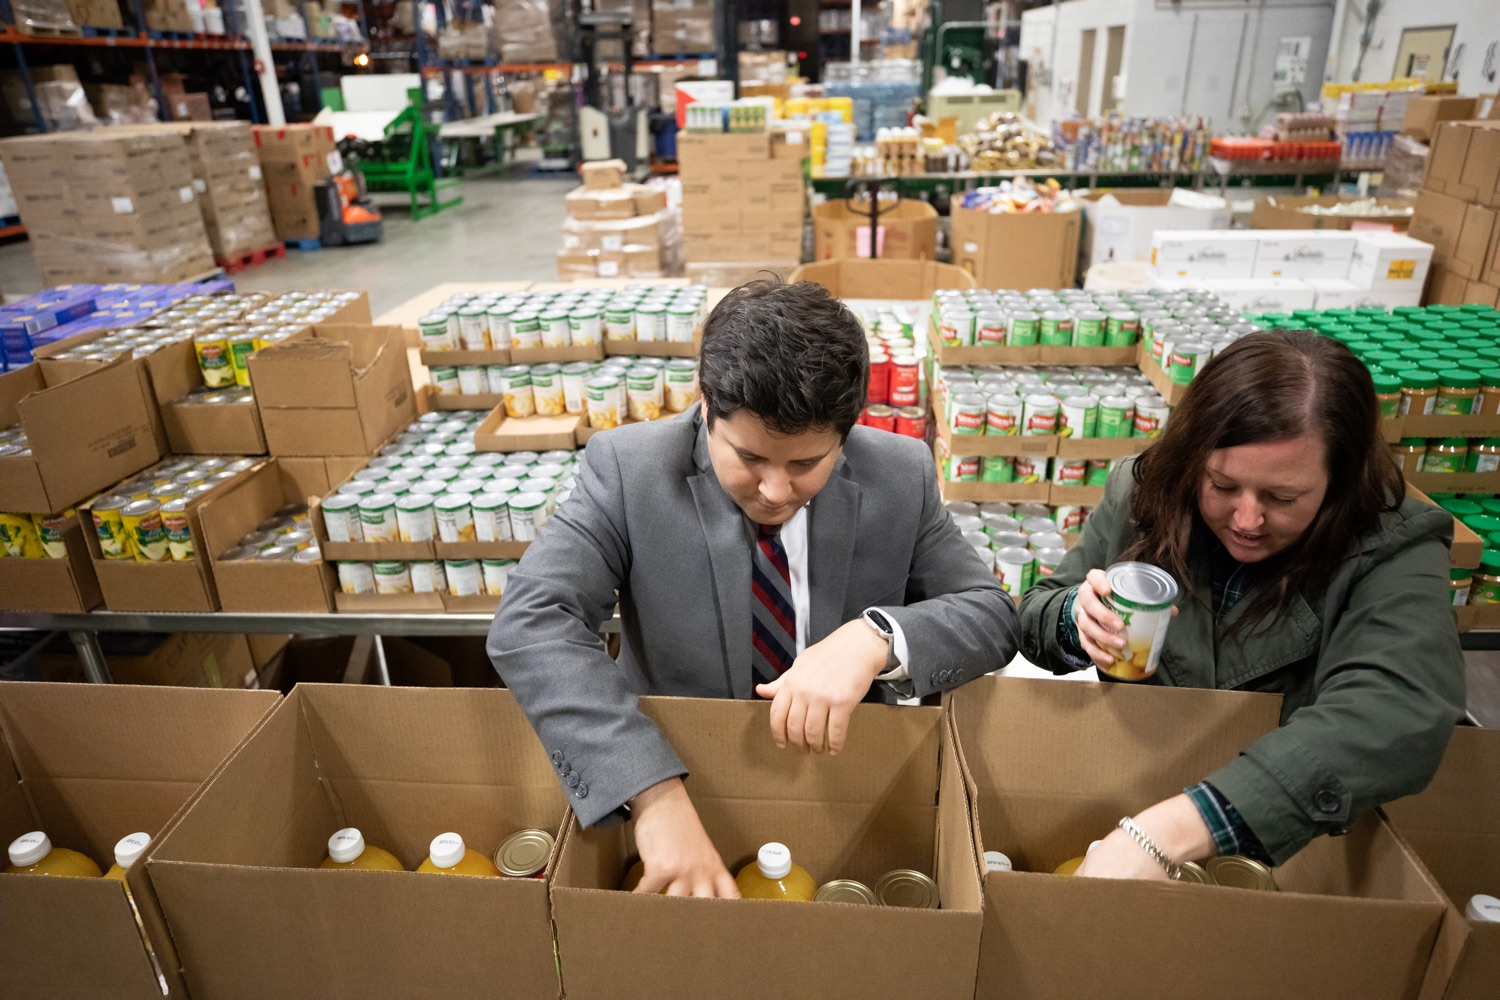 "<a href=""https://filesource.wostreaming.net/commonwealthofpa/photo/17632_gov_foodbank_volunteering_dz_014.jpg"" target=""_blank"">⇣ Download Photo<br></a>Members of Governor Tom Wolfs office loading boxes of food at the Central Pennsylvania Food Bank.  The governor and first lady visit the Central Pennsylvania Food Bank in Harrisburg to participate in a volunteer project, packing boxes of food for veterans and their families. Ahead of Thanksgiving and the holiday season, Governor Tom Wolf and First Lady Frances Wolf are reminding Pennsylvanians of the importance of helping each other. Harrisburg, PA  Tuesday November 26, 2019"